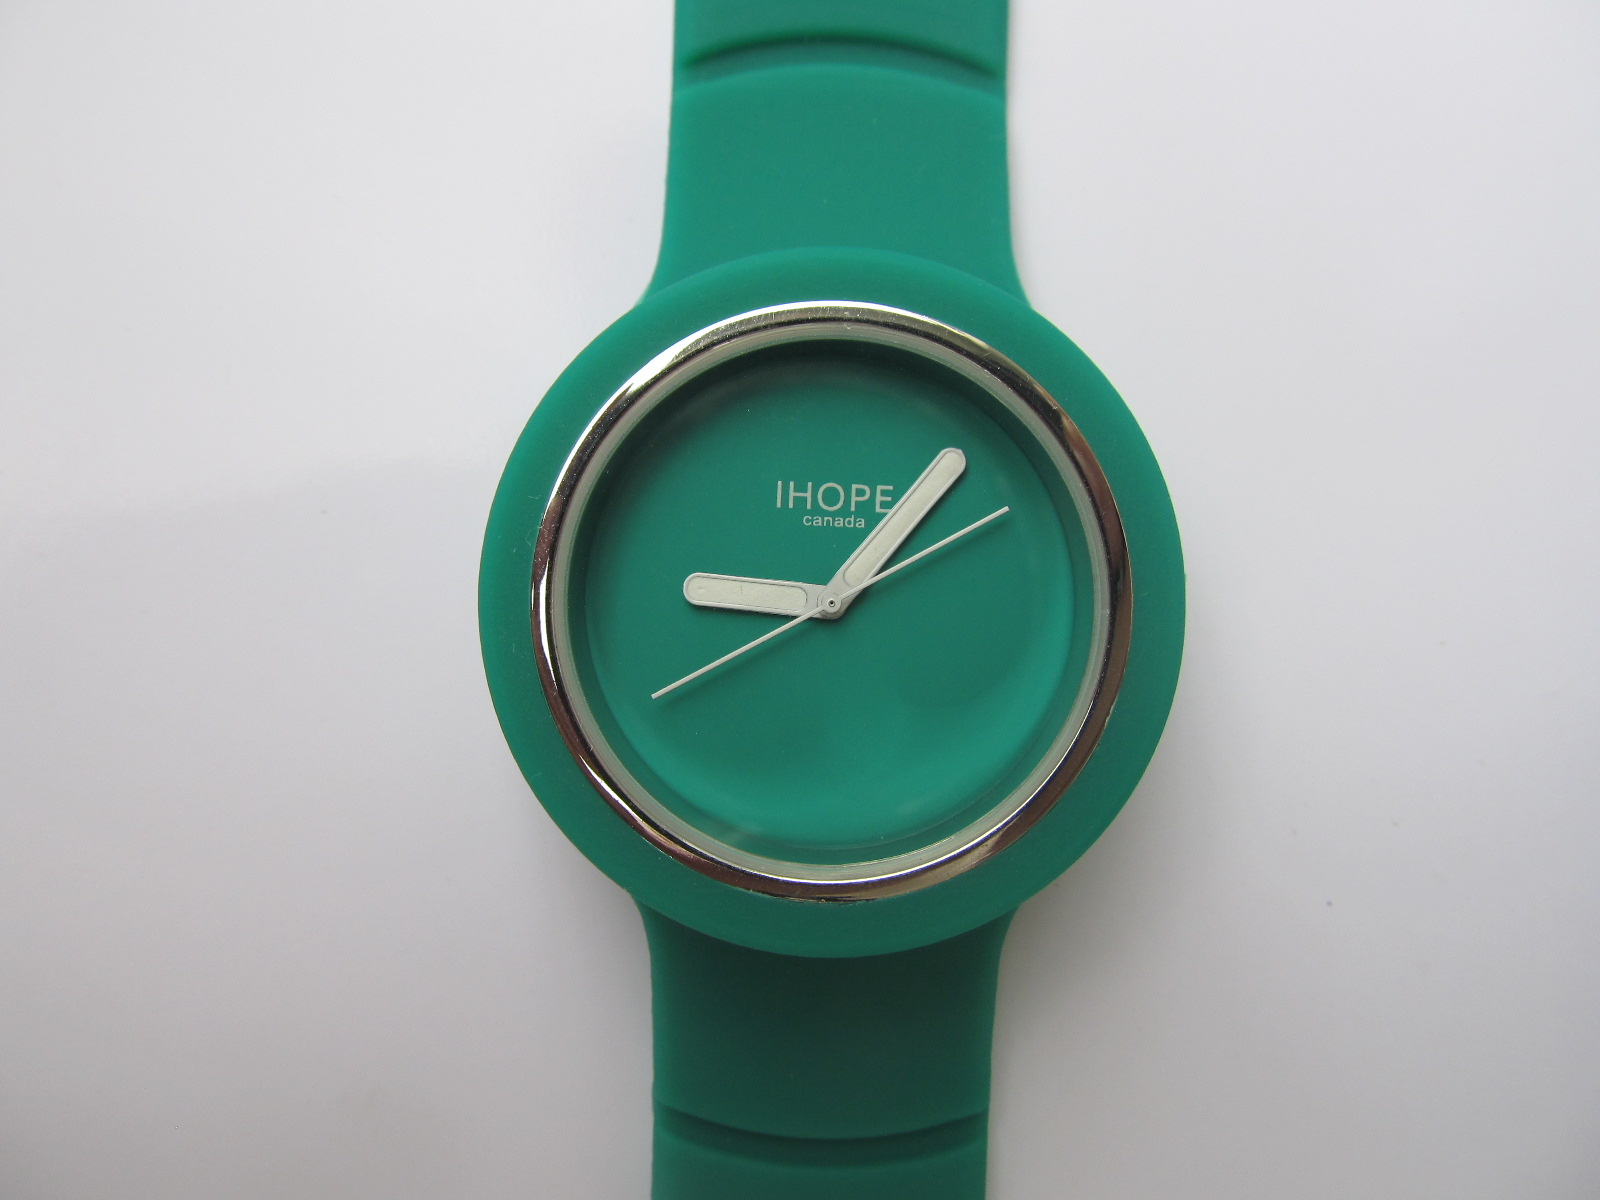 Win an Awesome IHOPE Watch